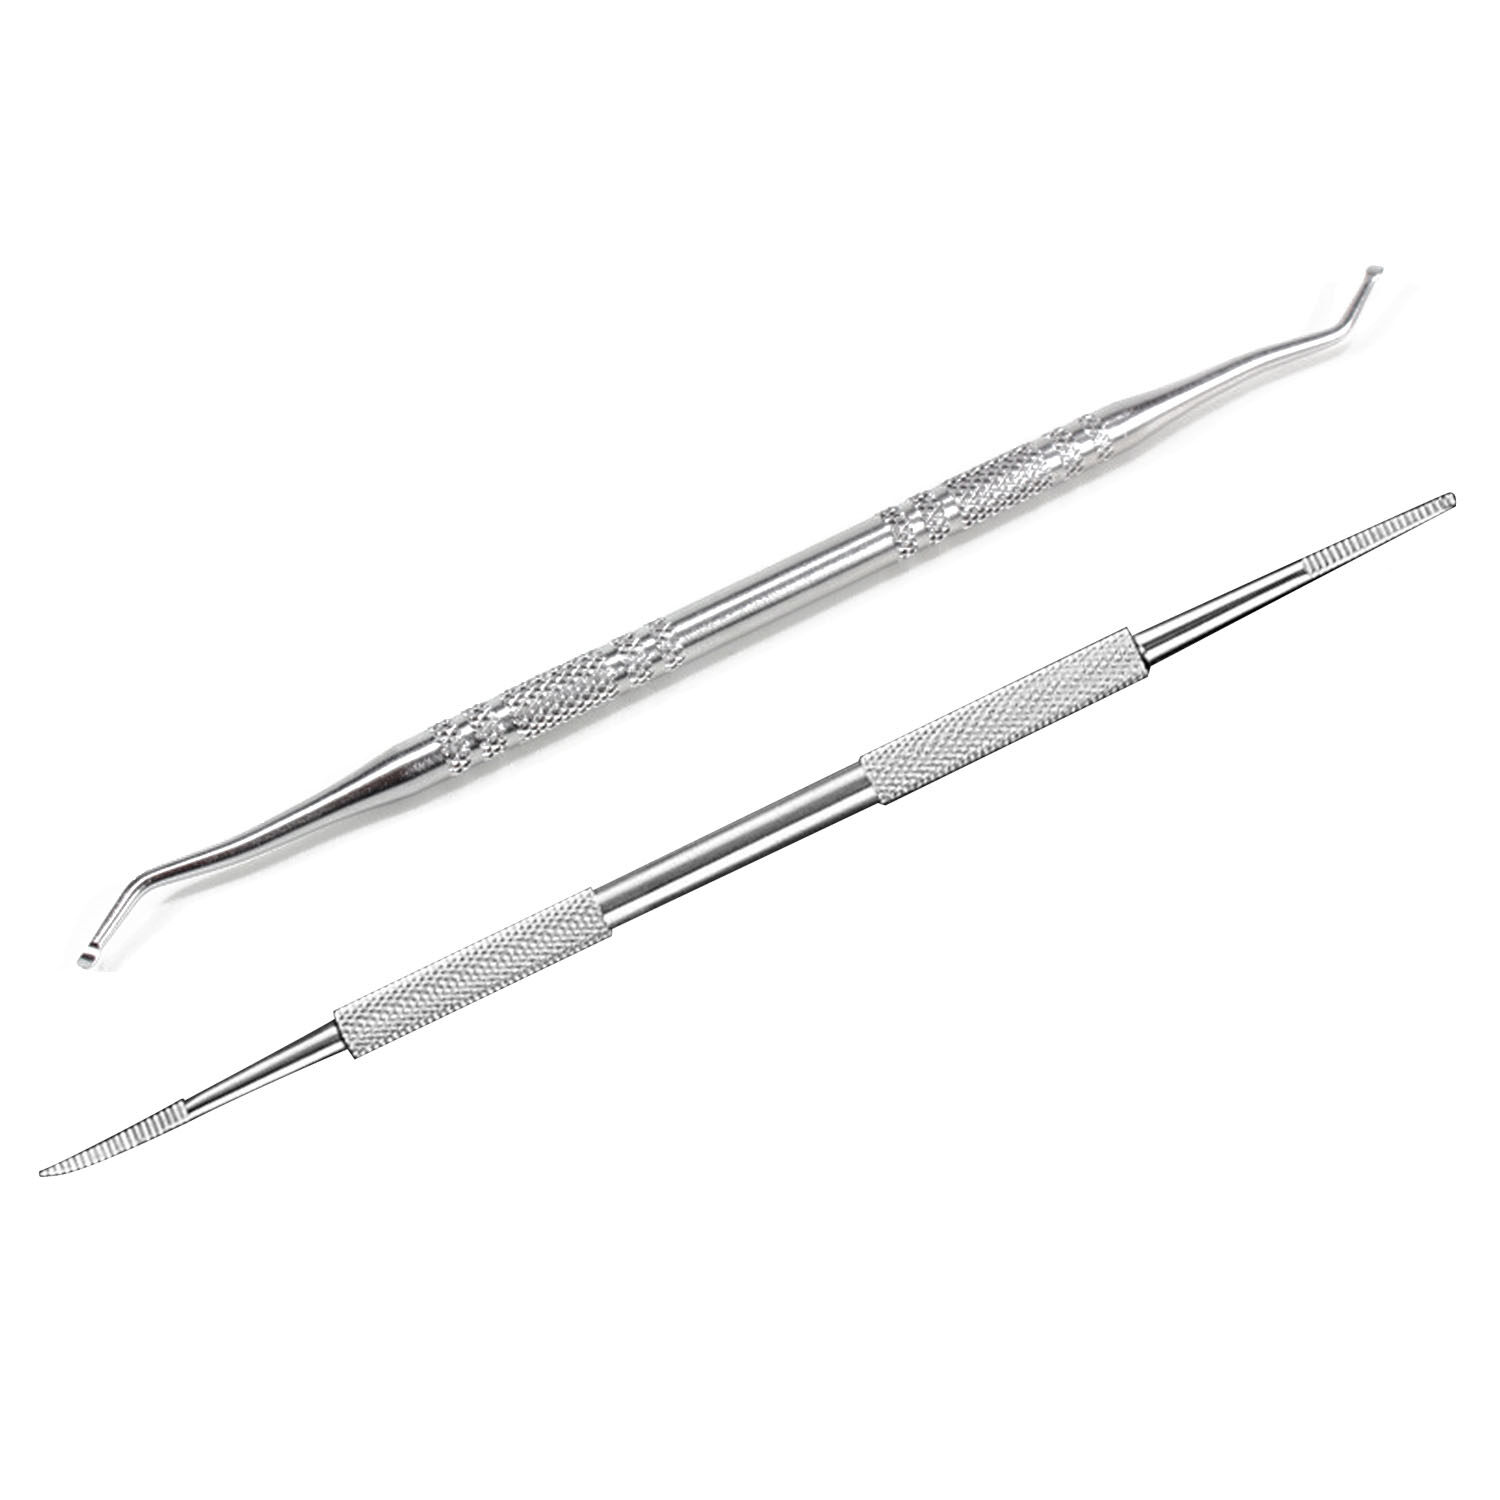 Stainless Steel Professional Ingrown Toenail File and Lifter Set ...